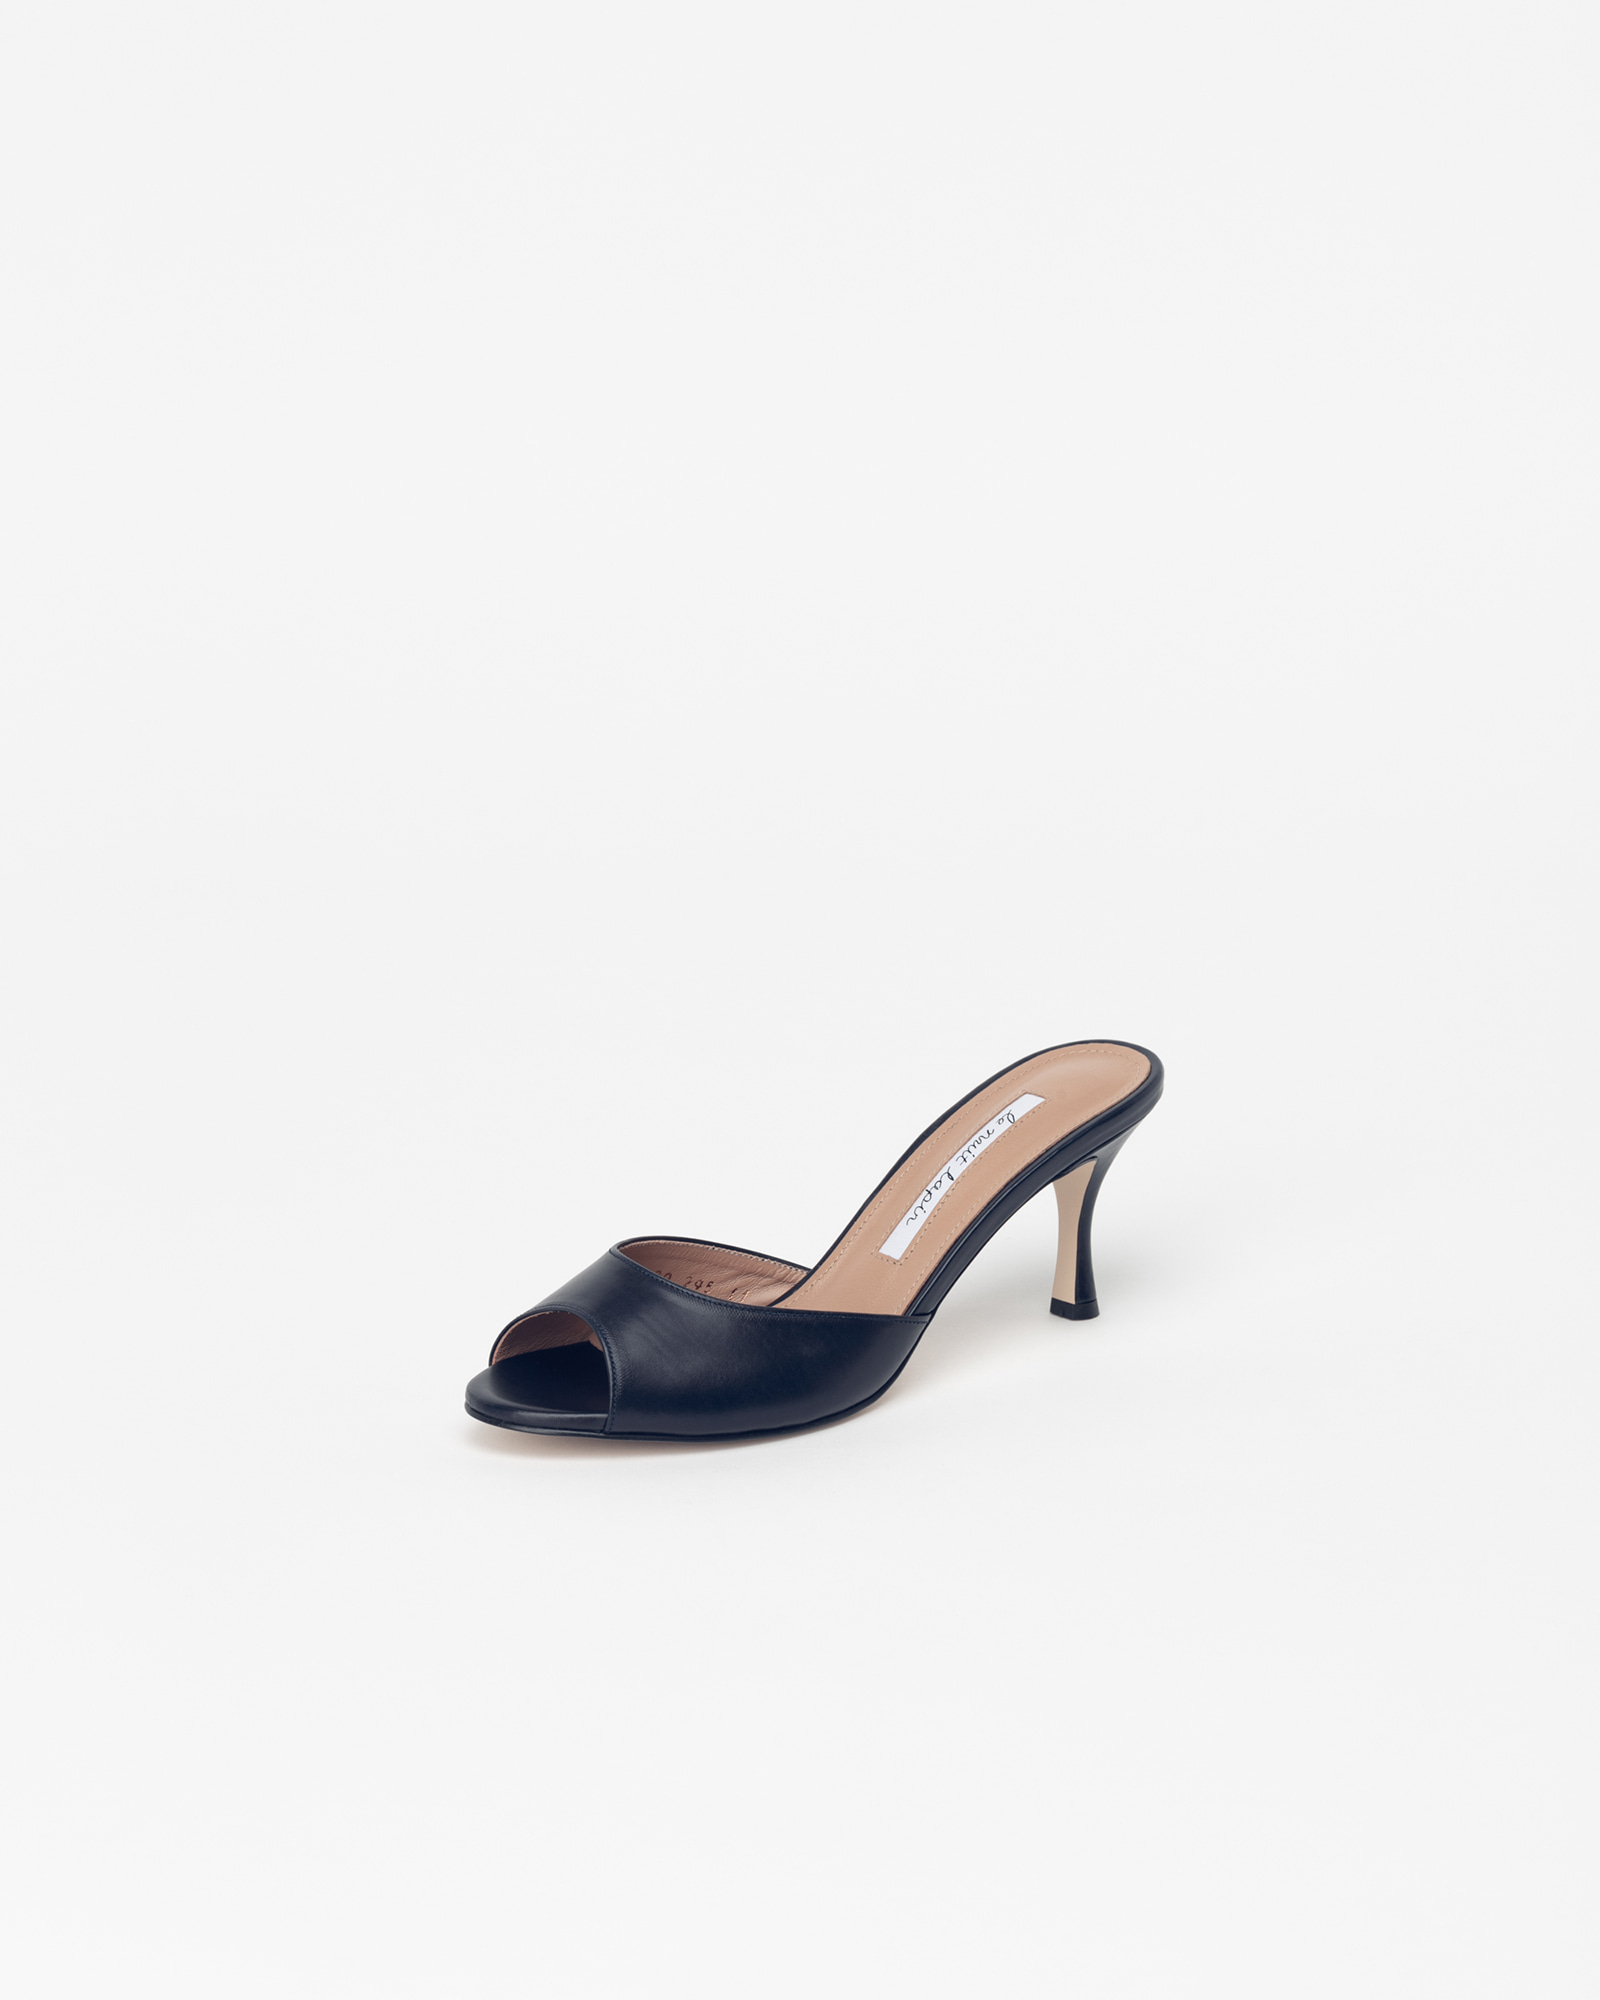 Chartres Mules in Navy Baby Calf